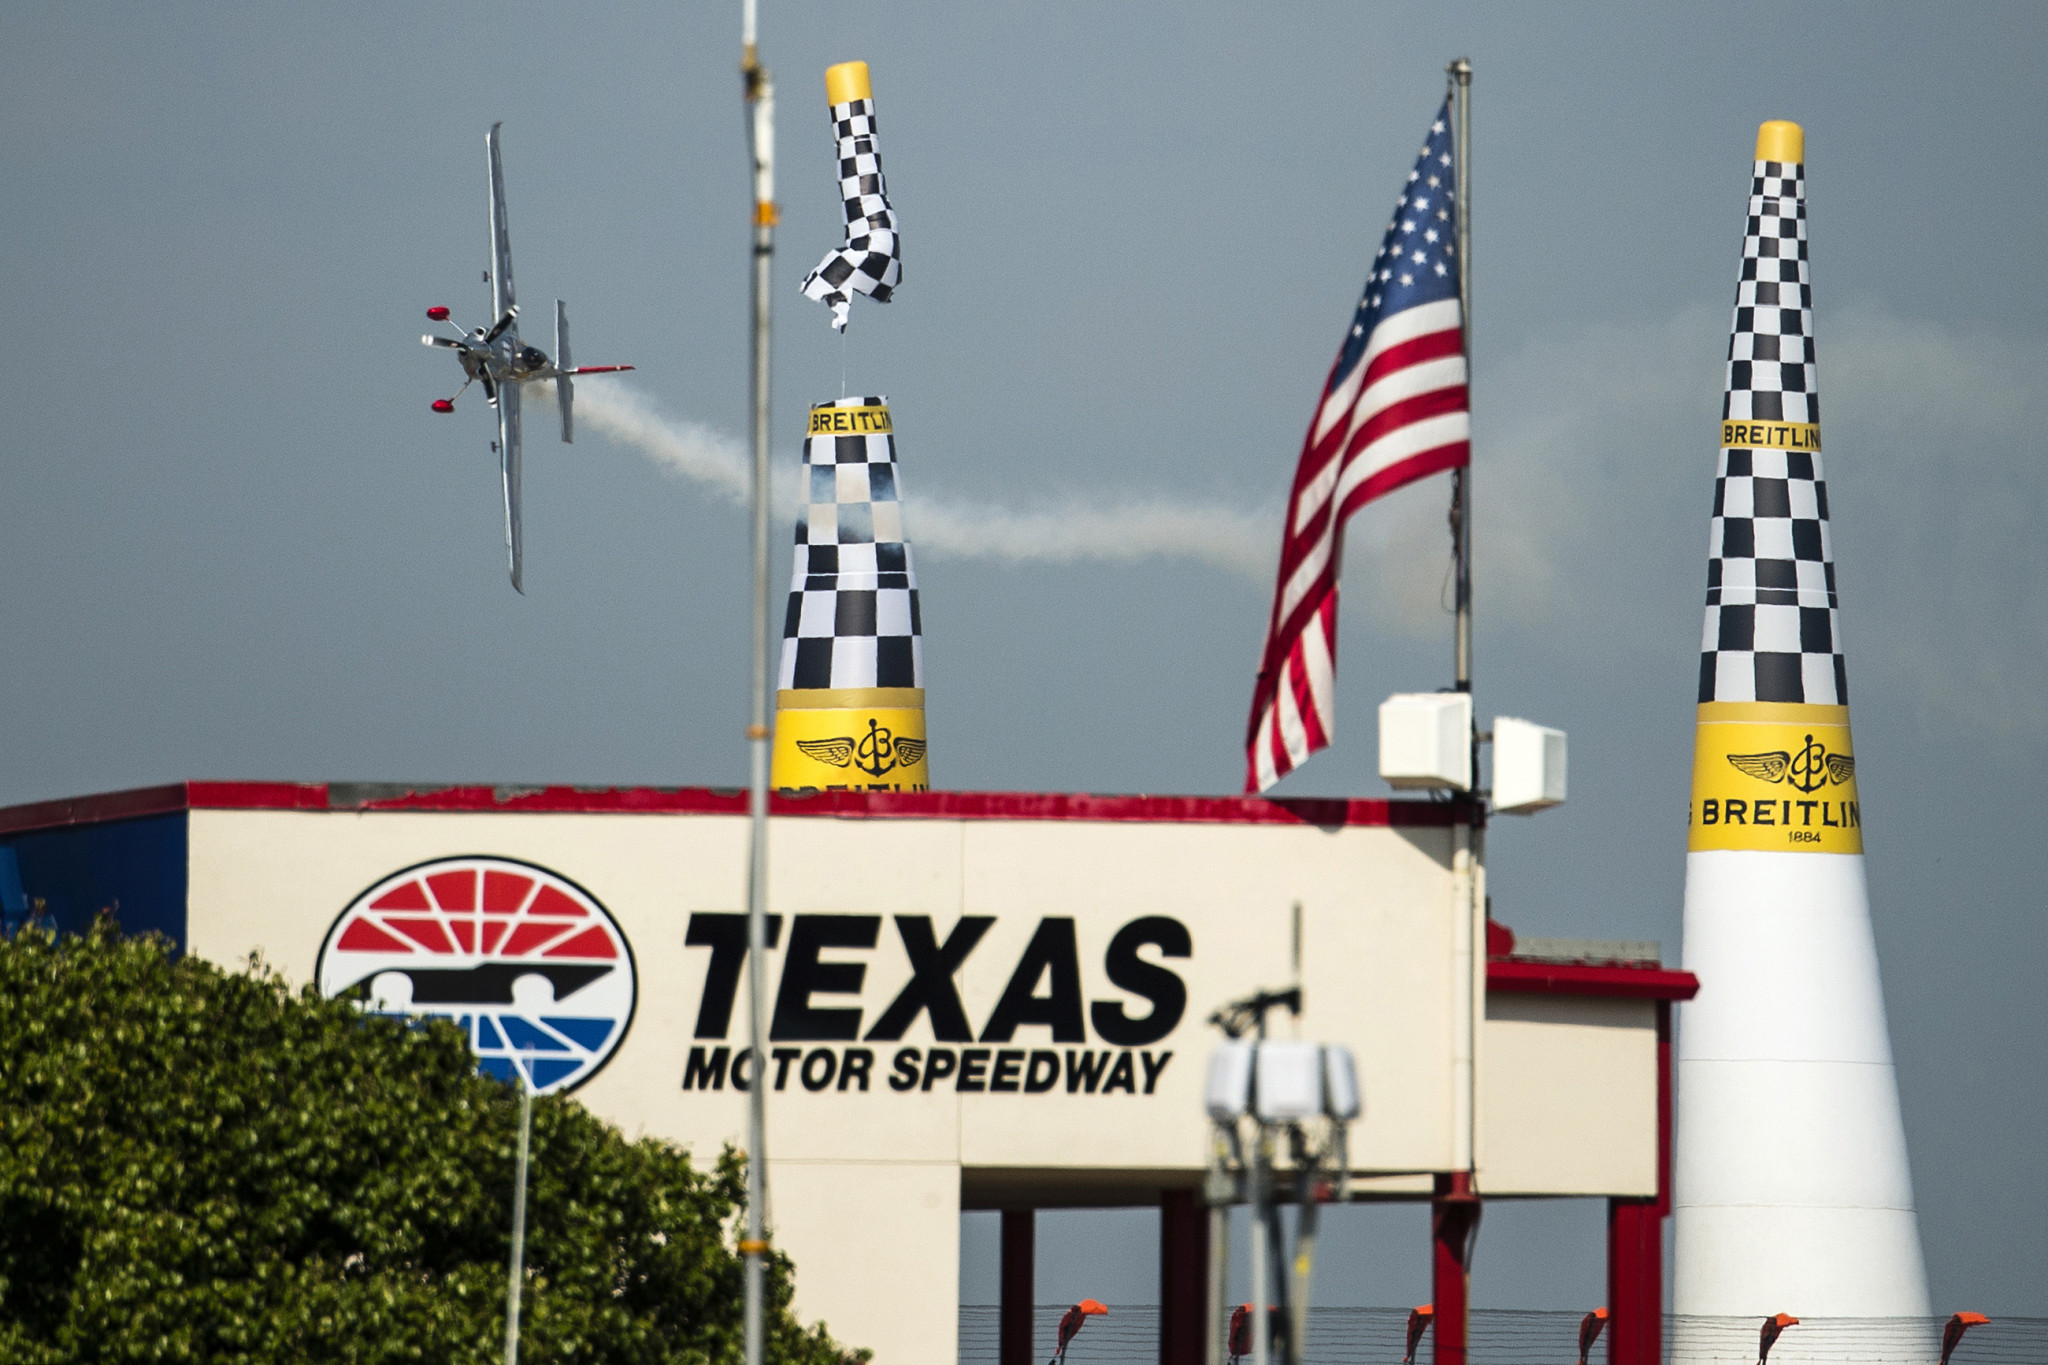 Red Bull Air Race World Championship season set for dramatic finale in Texas